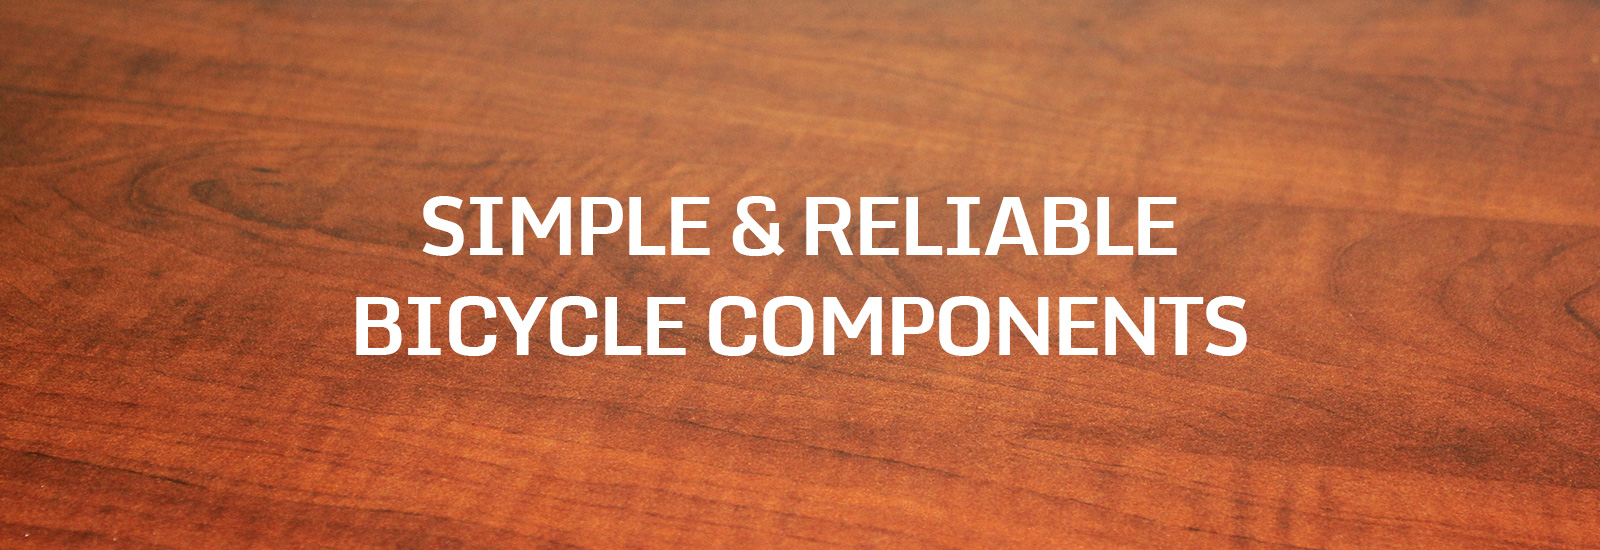 Simple & Reliable Bicycle Components